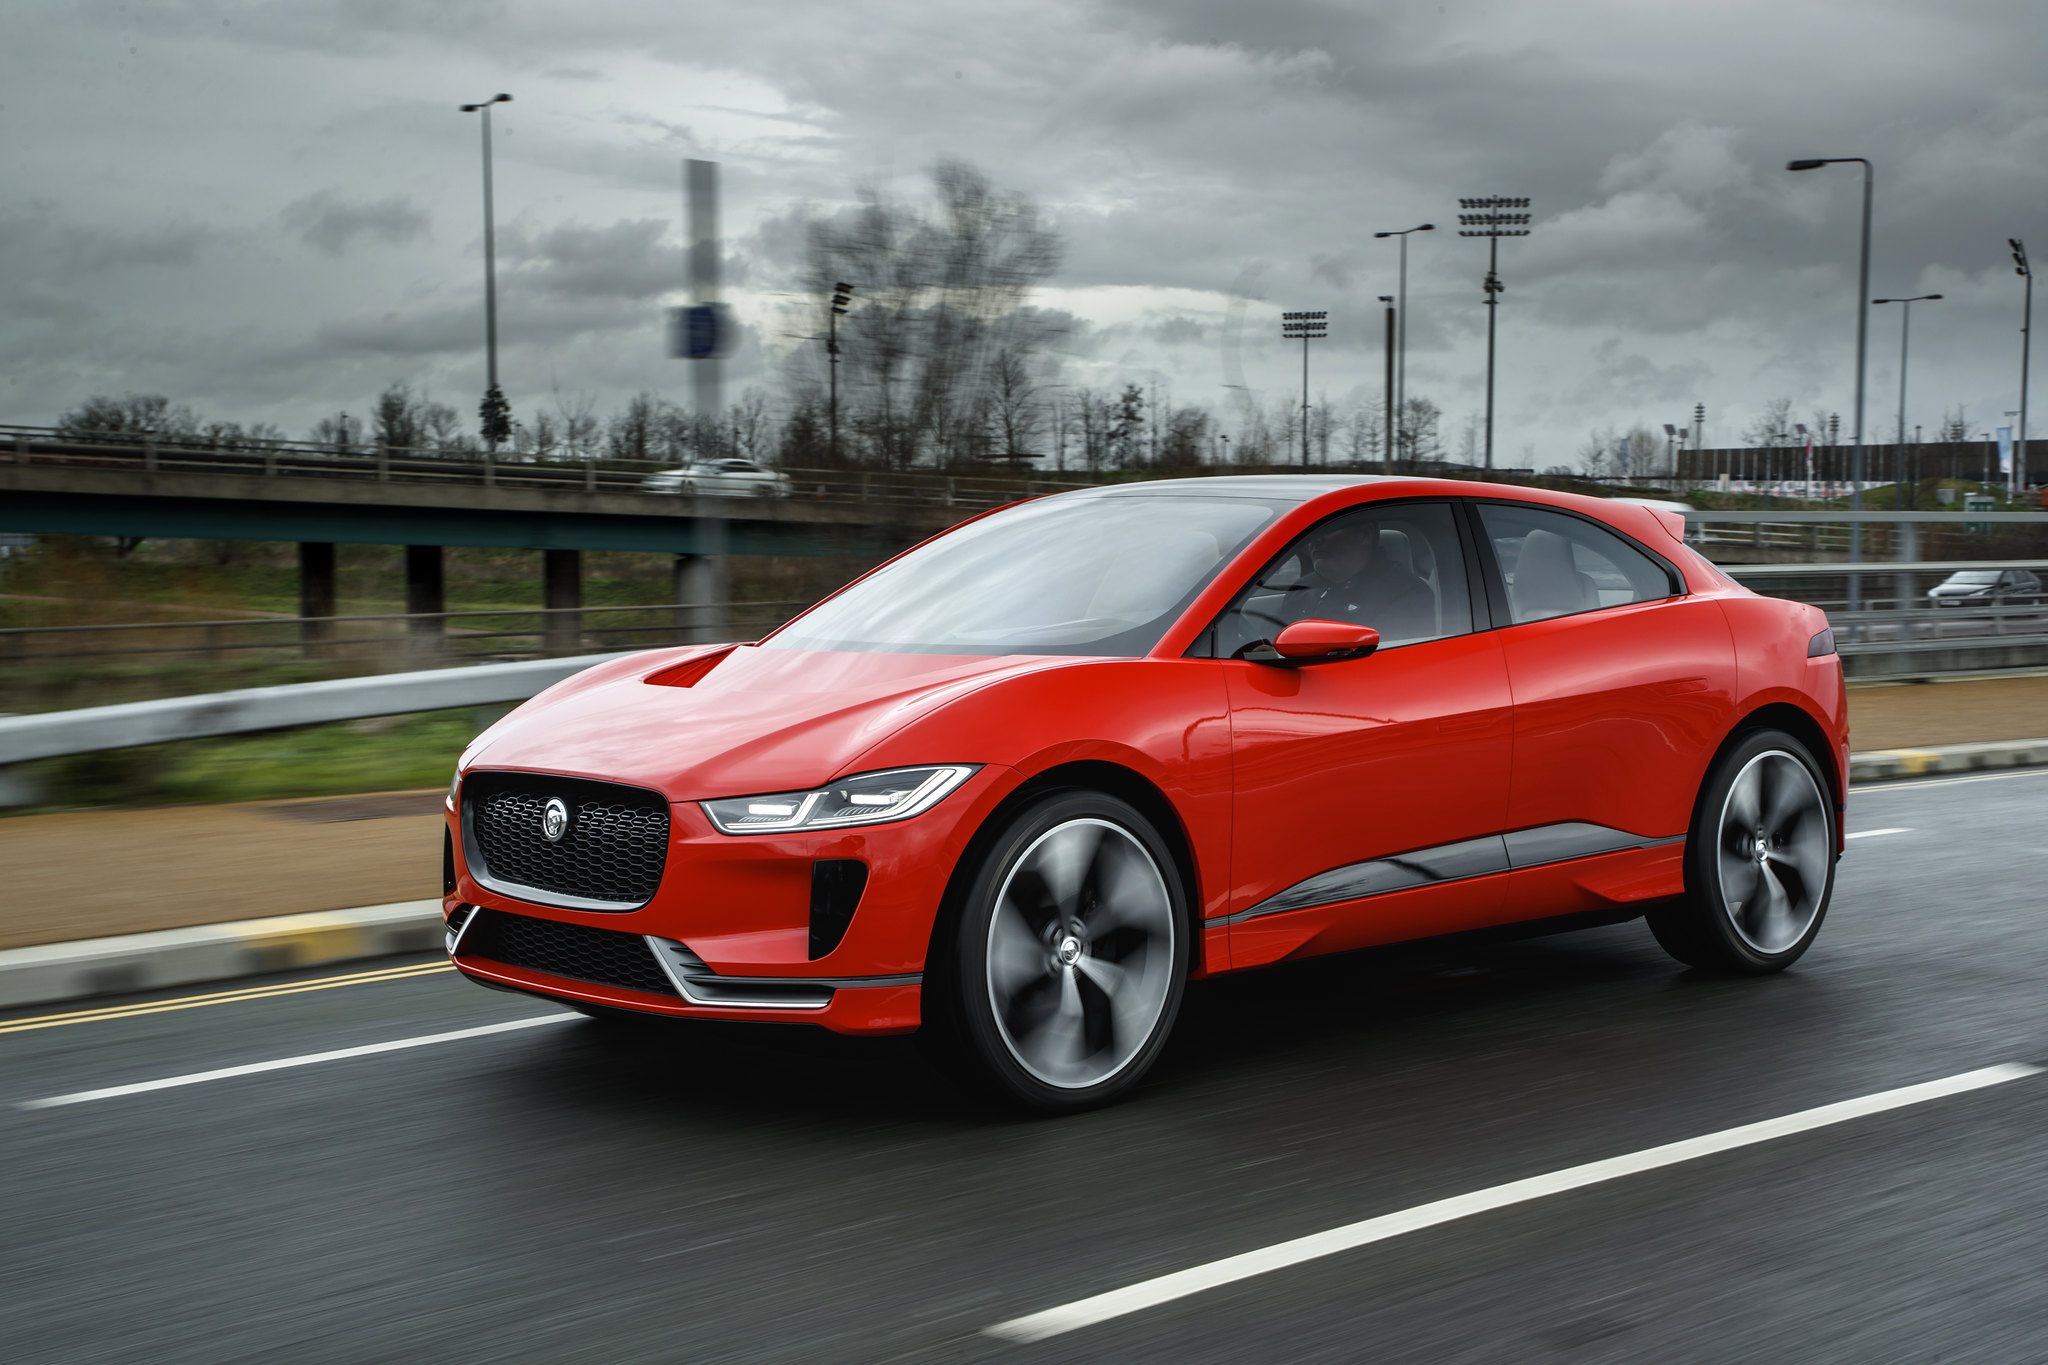 Jaguar I-PACE Concept driven on the streets of London for the first time